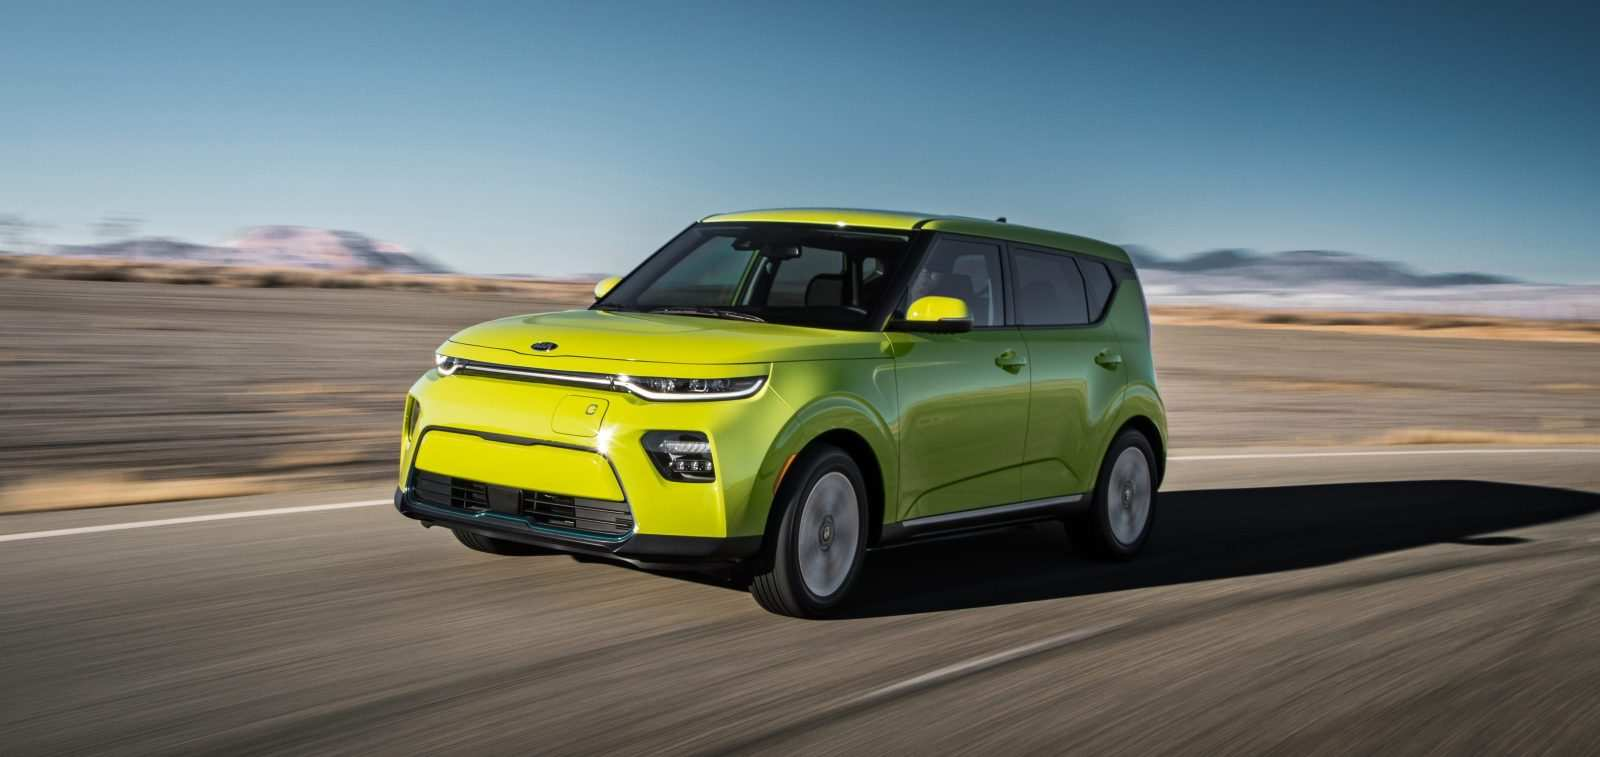 40 The Best 2020 Kia Soul Ev Availability Wallpaper